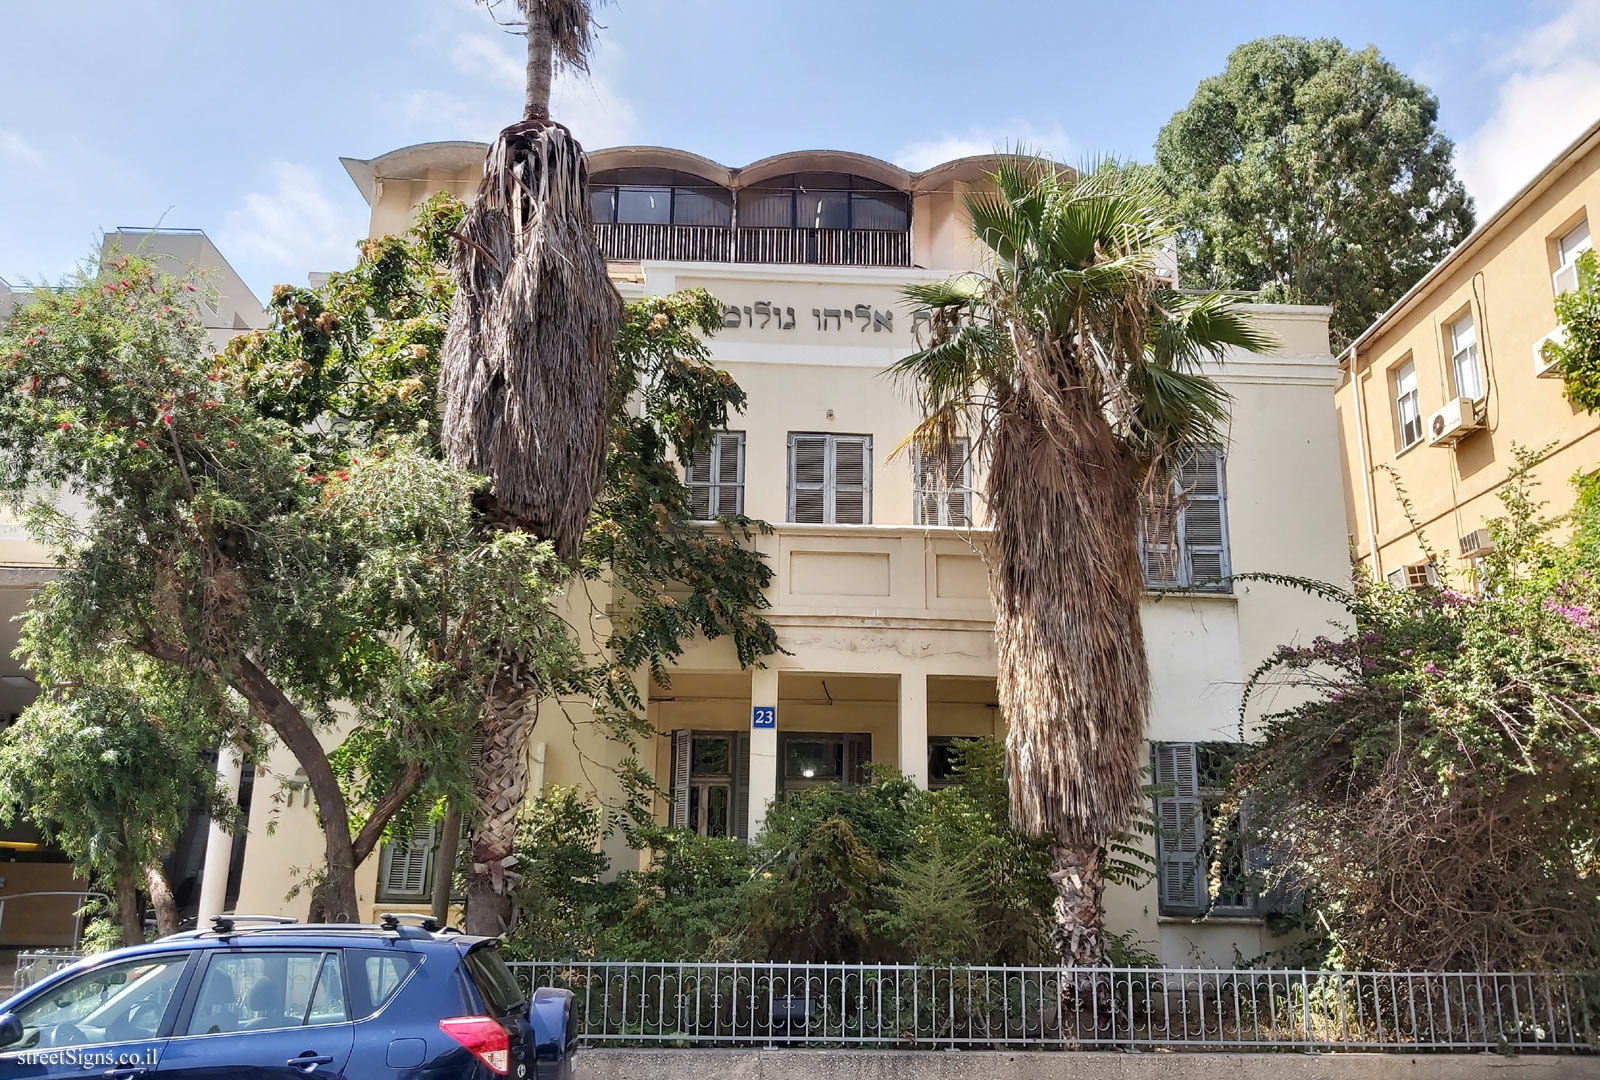 Independence Trail - The Haganah Museum - Rothschild Blvd 23, Tel Aviv-Yafo, Israel